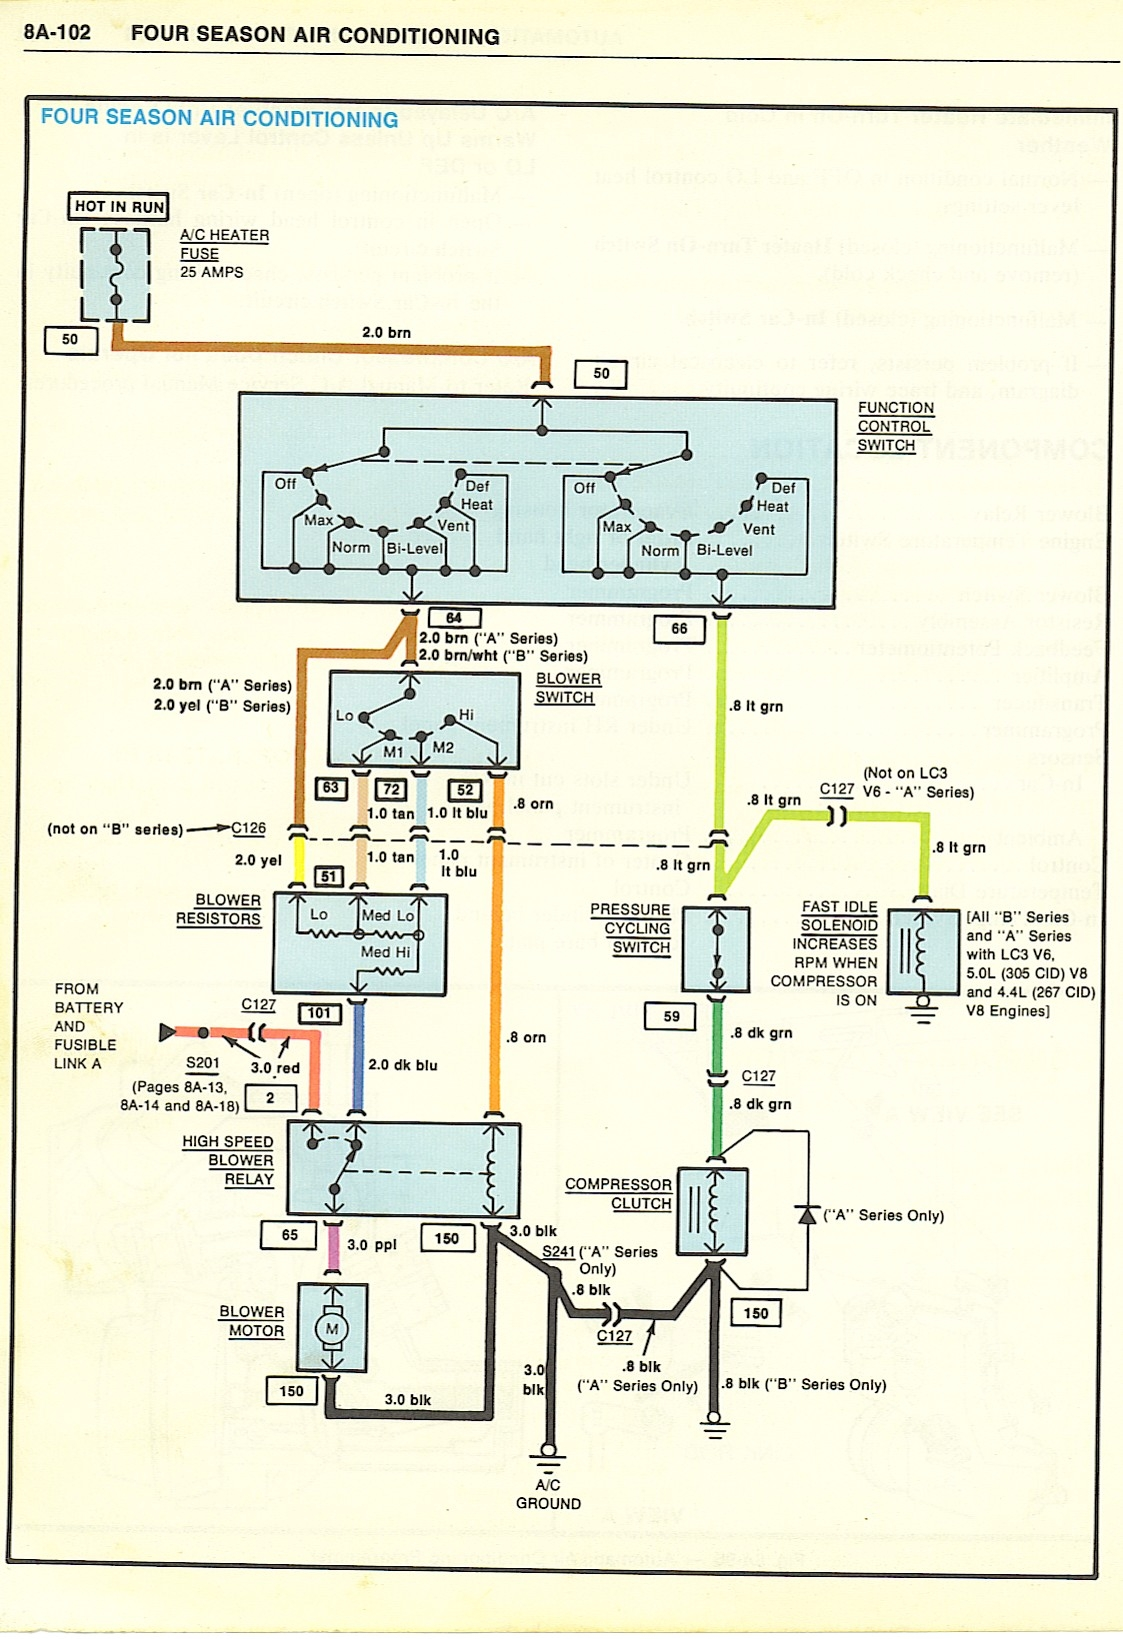 Chevy Diagrams Original Wiring Diagram Of 1965 Comet 1968 Camero A C Drawing